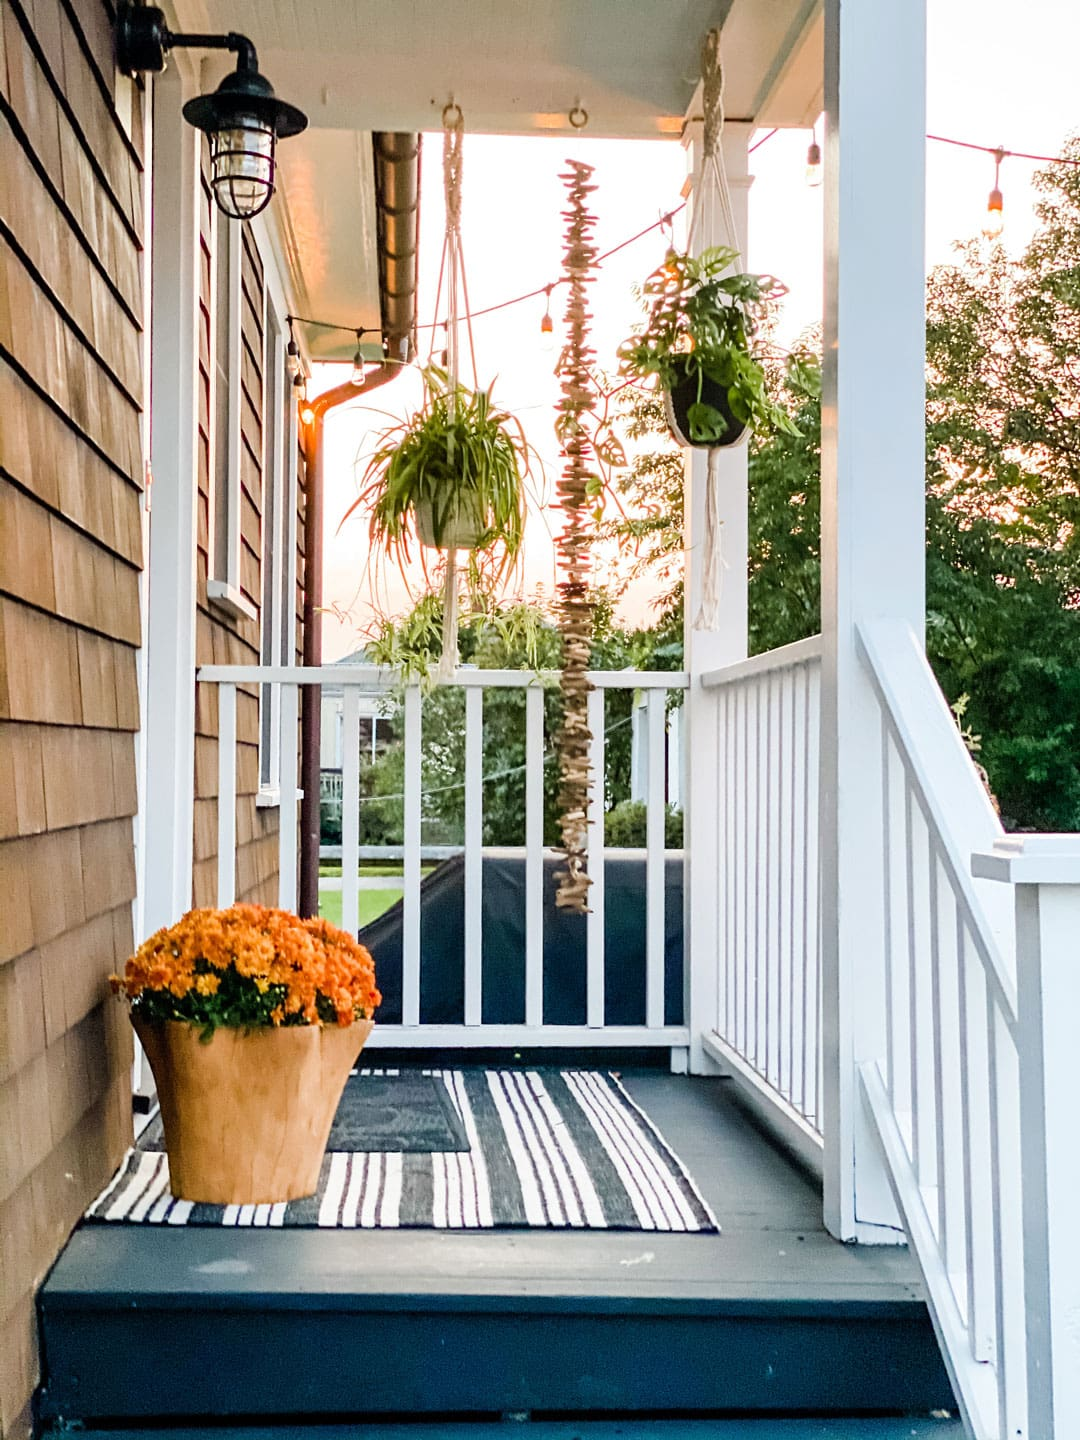 Lifestyle blogger Annie Diamond shares her simple fall decor on her back porch of her 1920s beach cottage in New England.